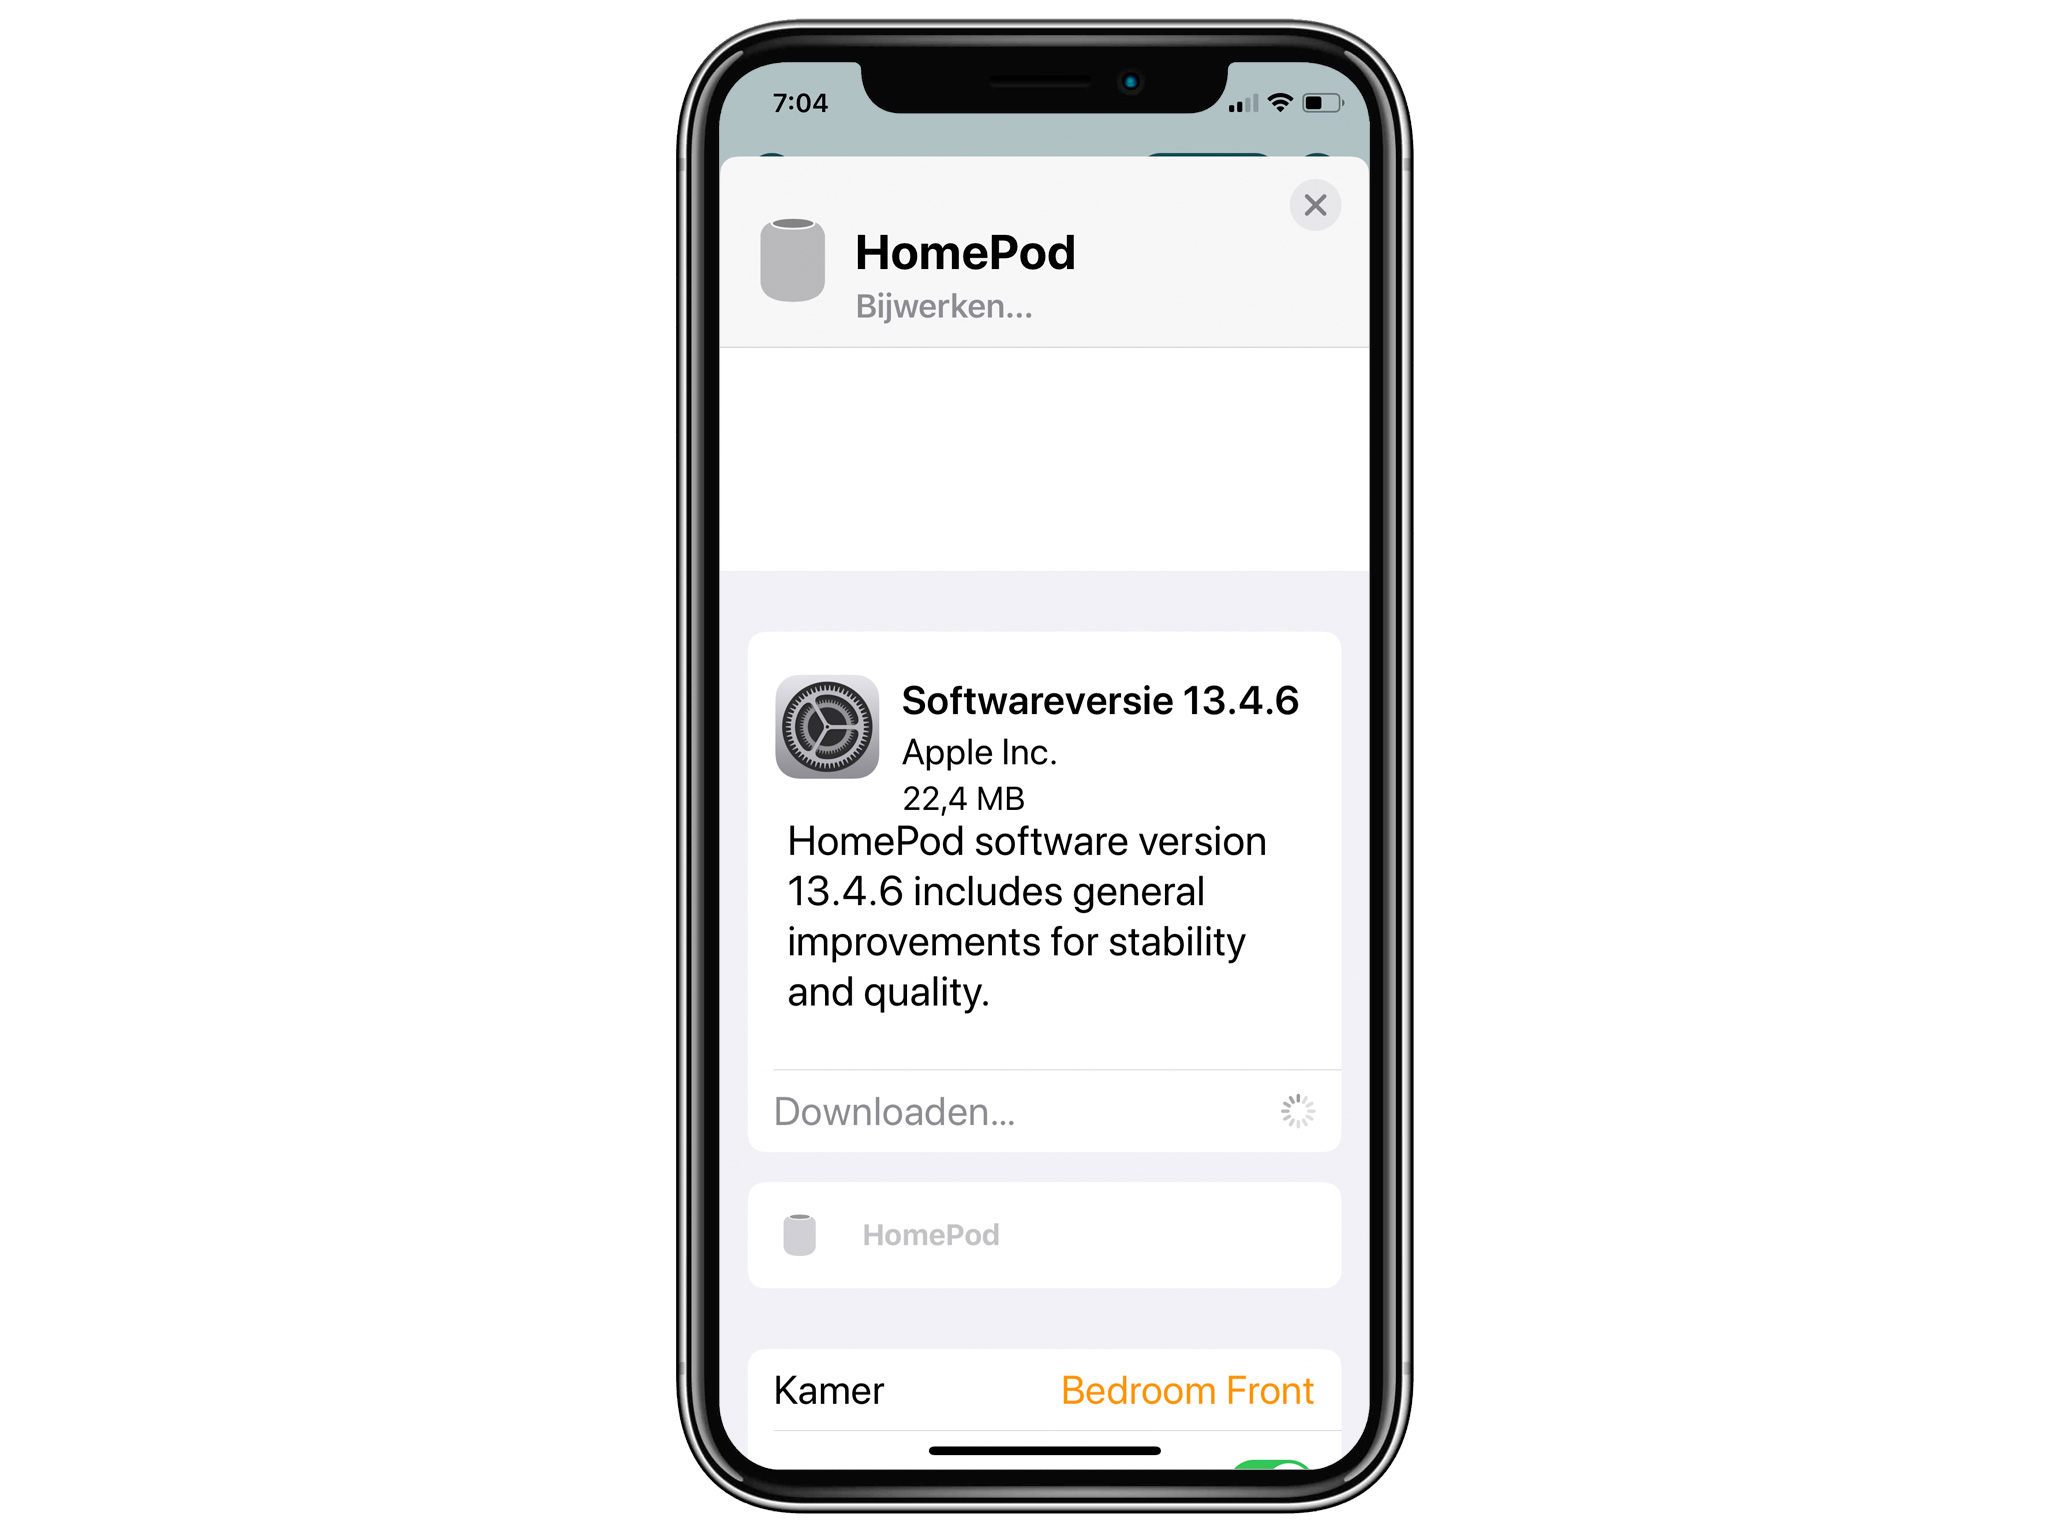 https://www.macfreak.nl/modules/news/images/zArt.HomePod13.4.6ReleaseNotes.jpg